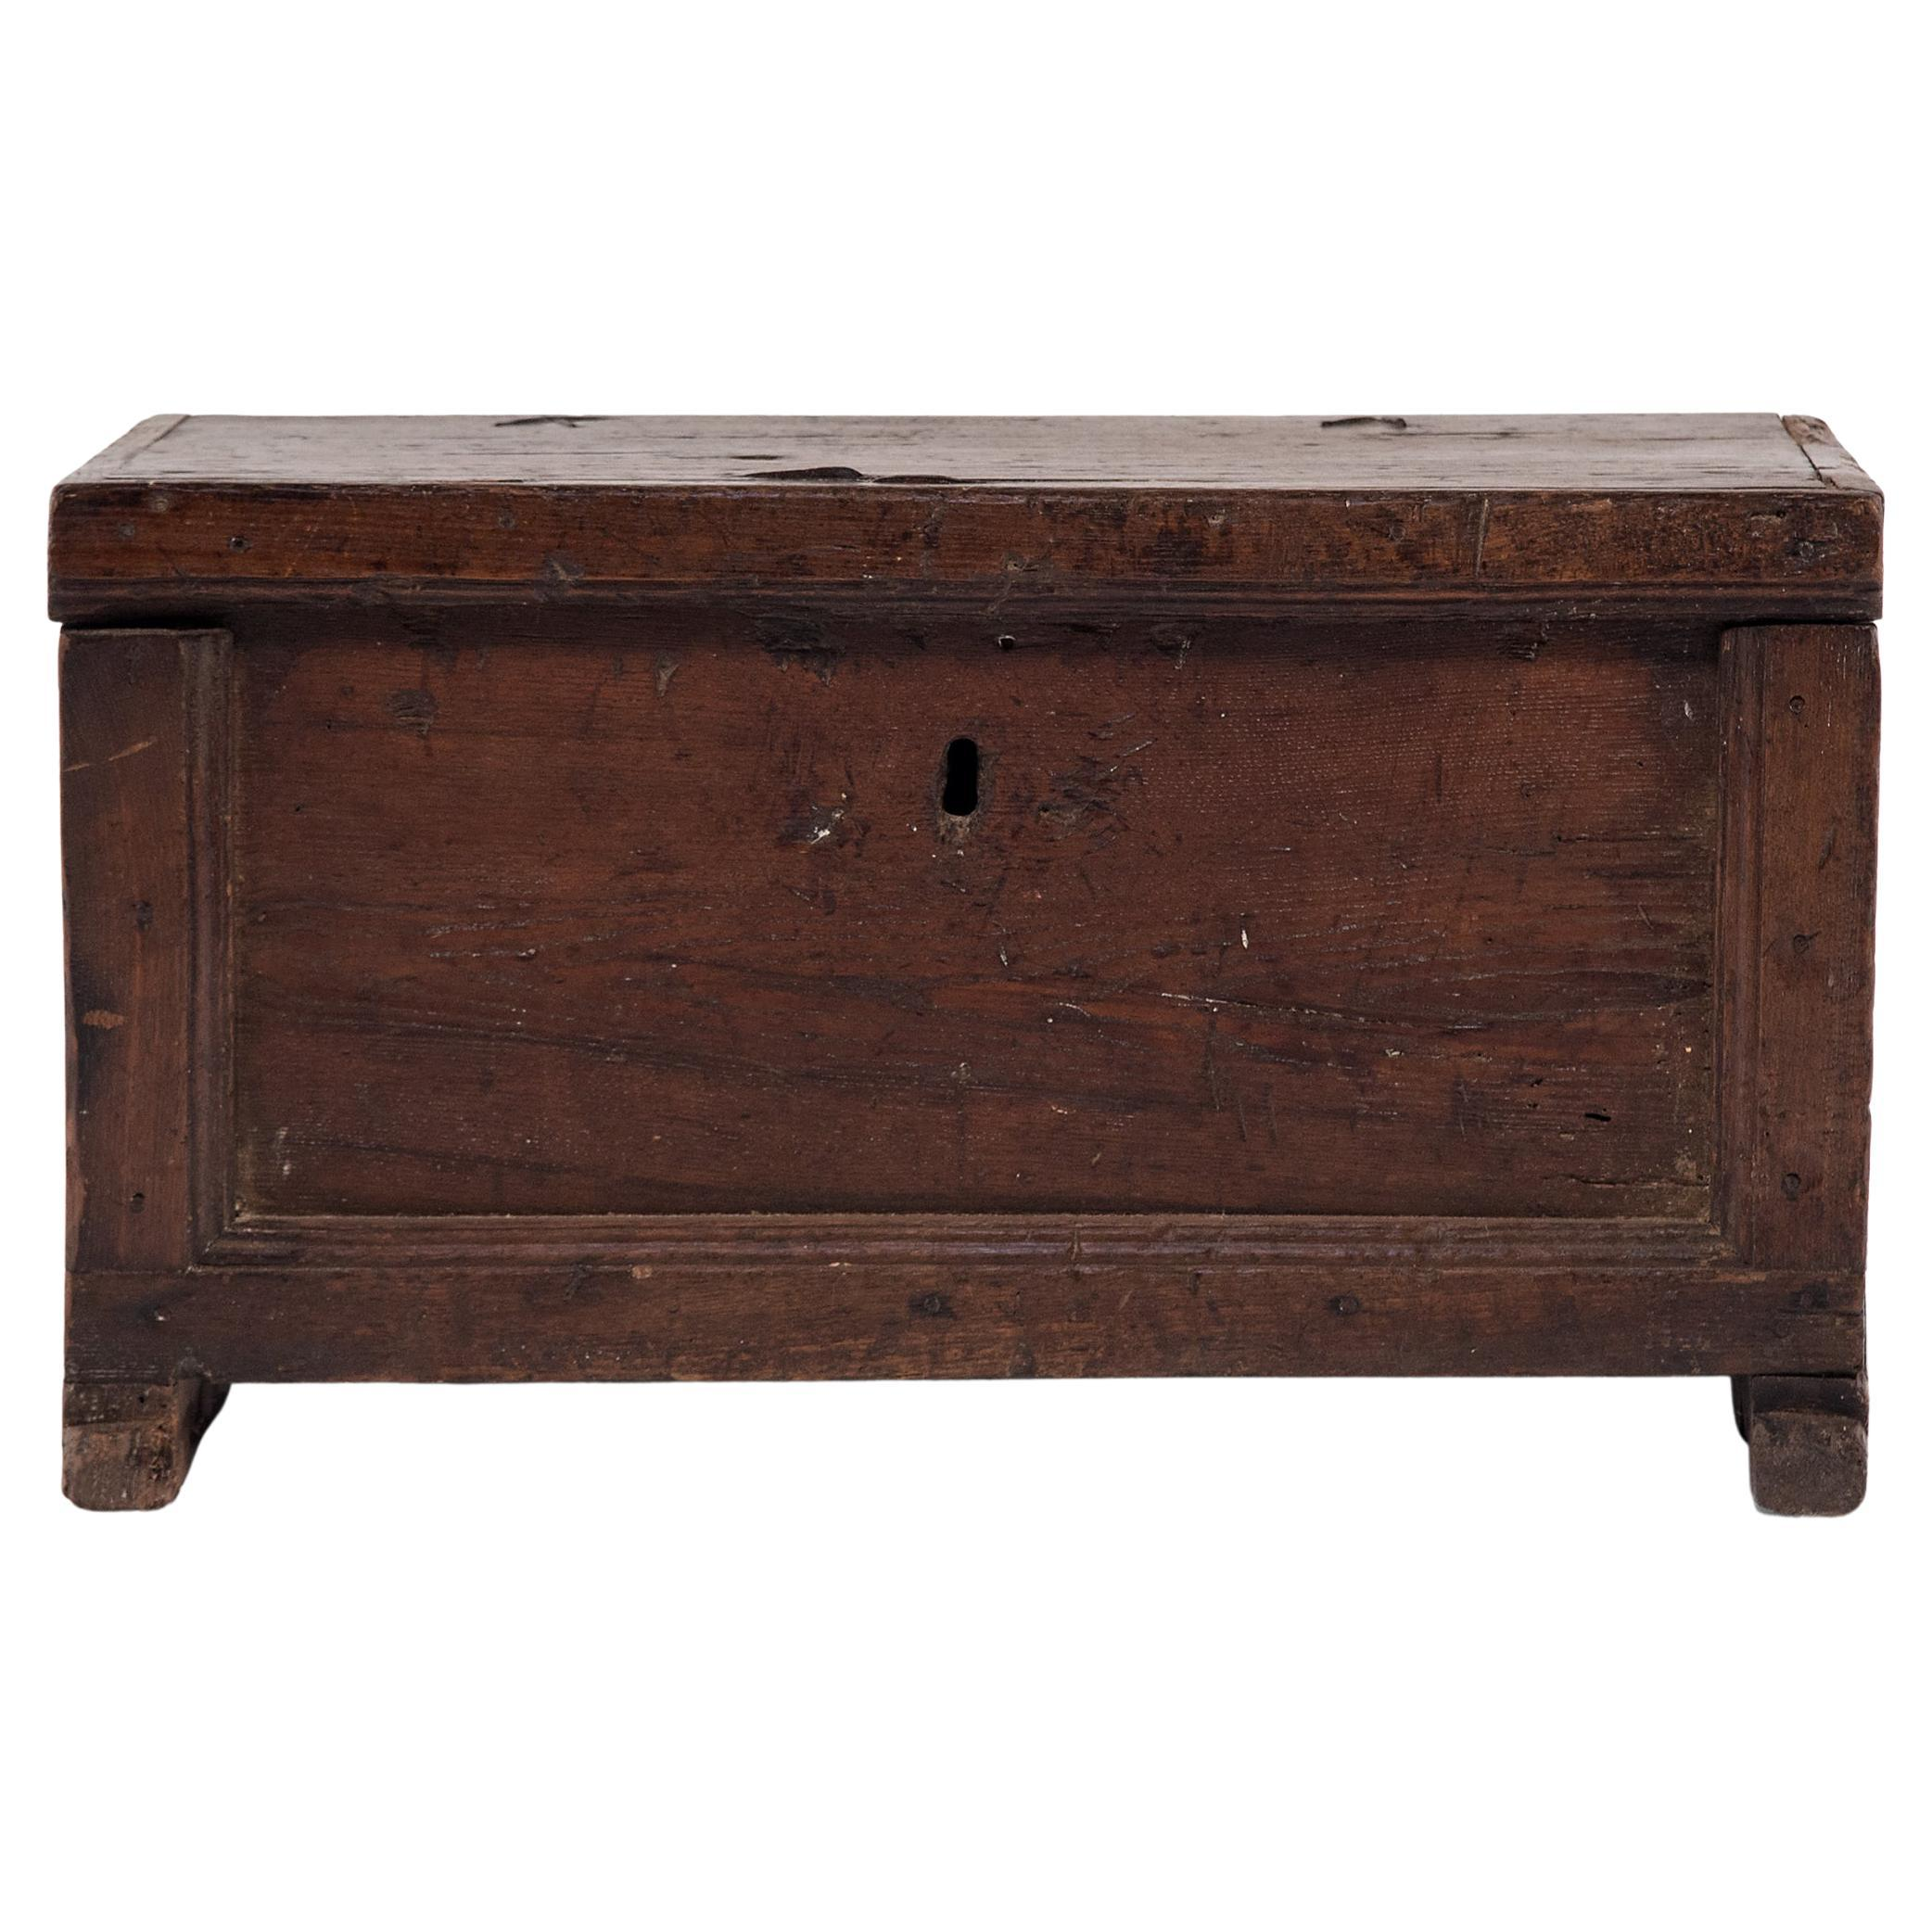 Provincial Wooden Storage Trunk